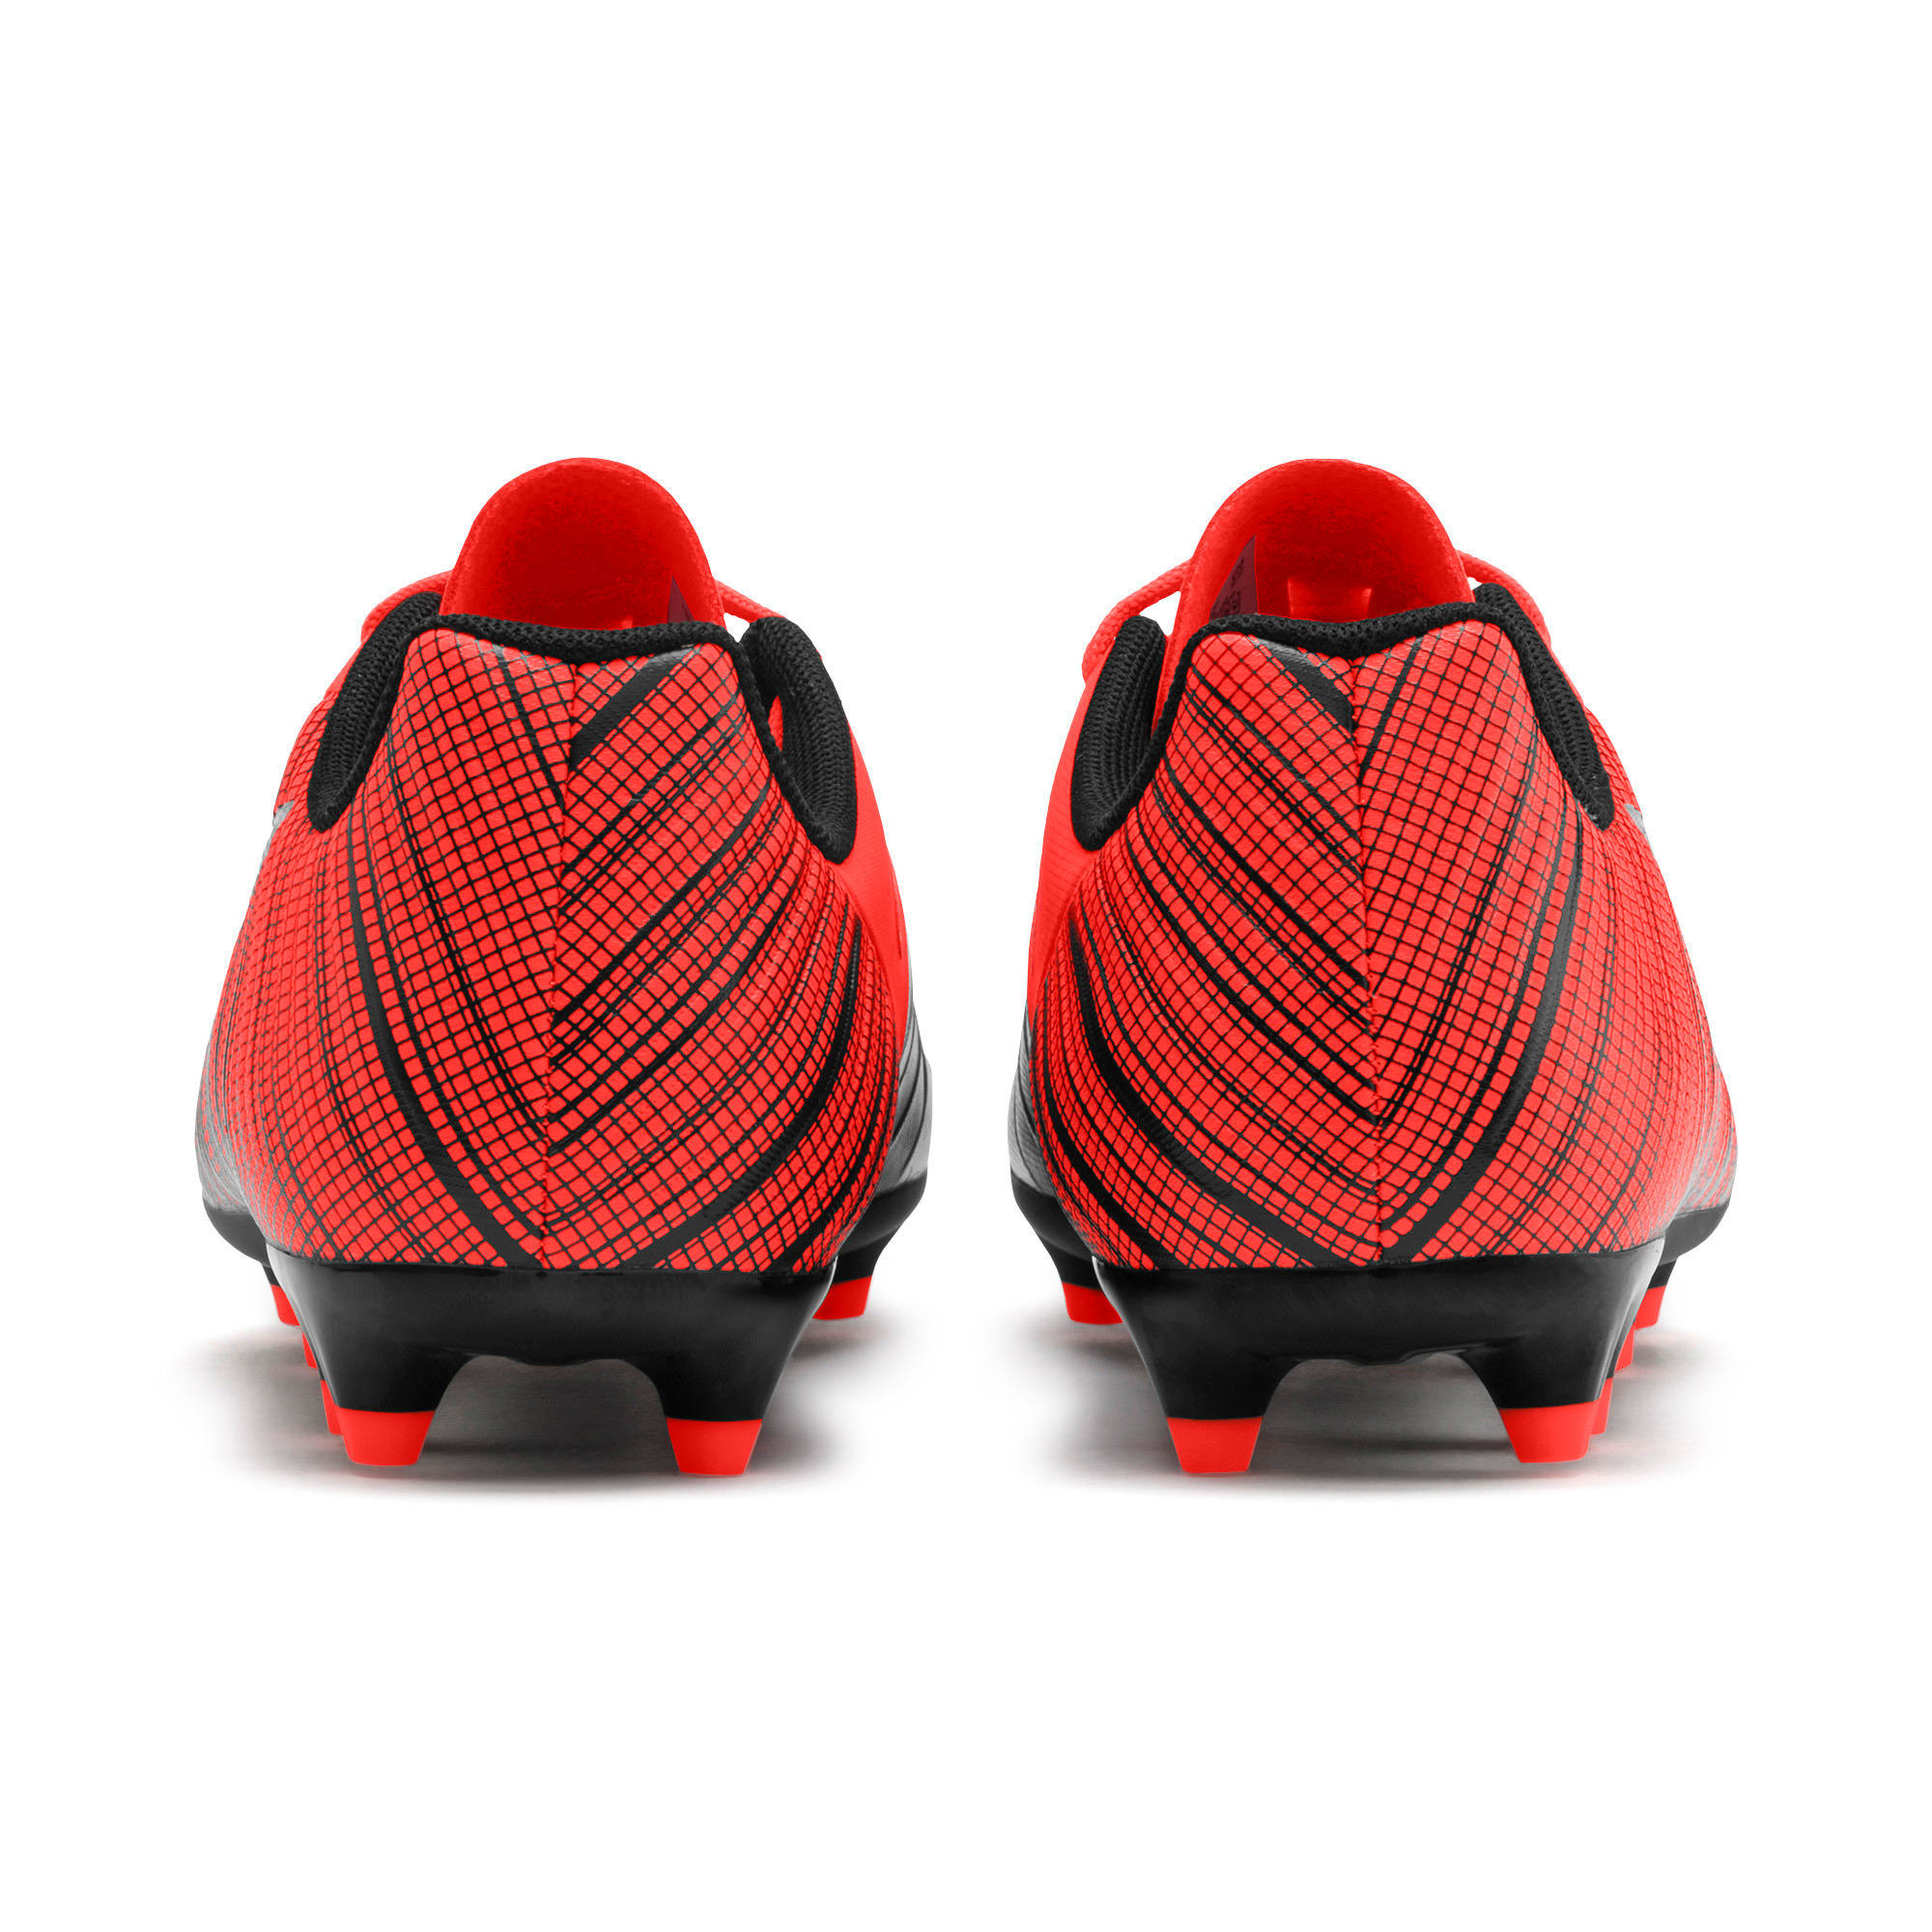 Thumbnail 3 of PUMA ONE 5.4 IT Youth Football Boots, Black-Nrgy Red-Aged Silver, medium